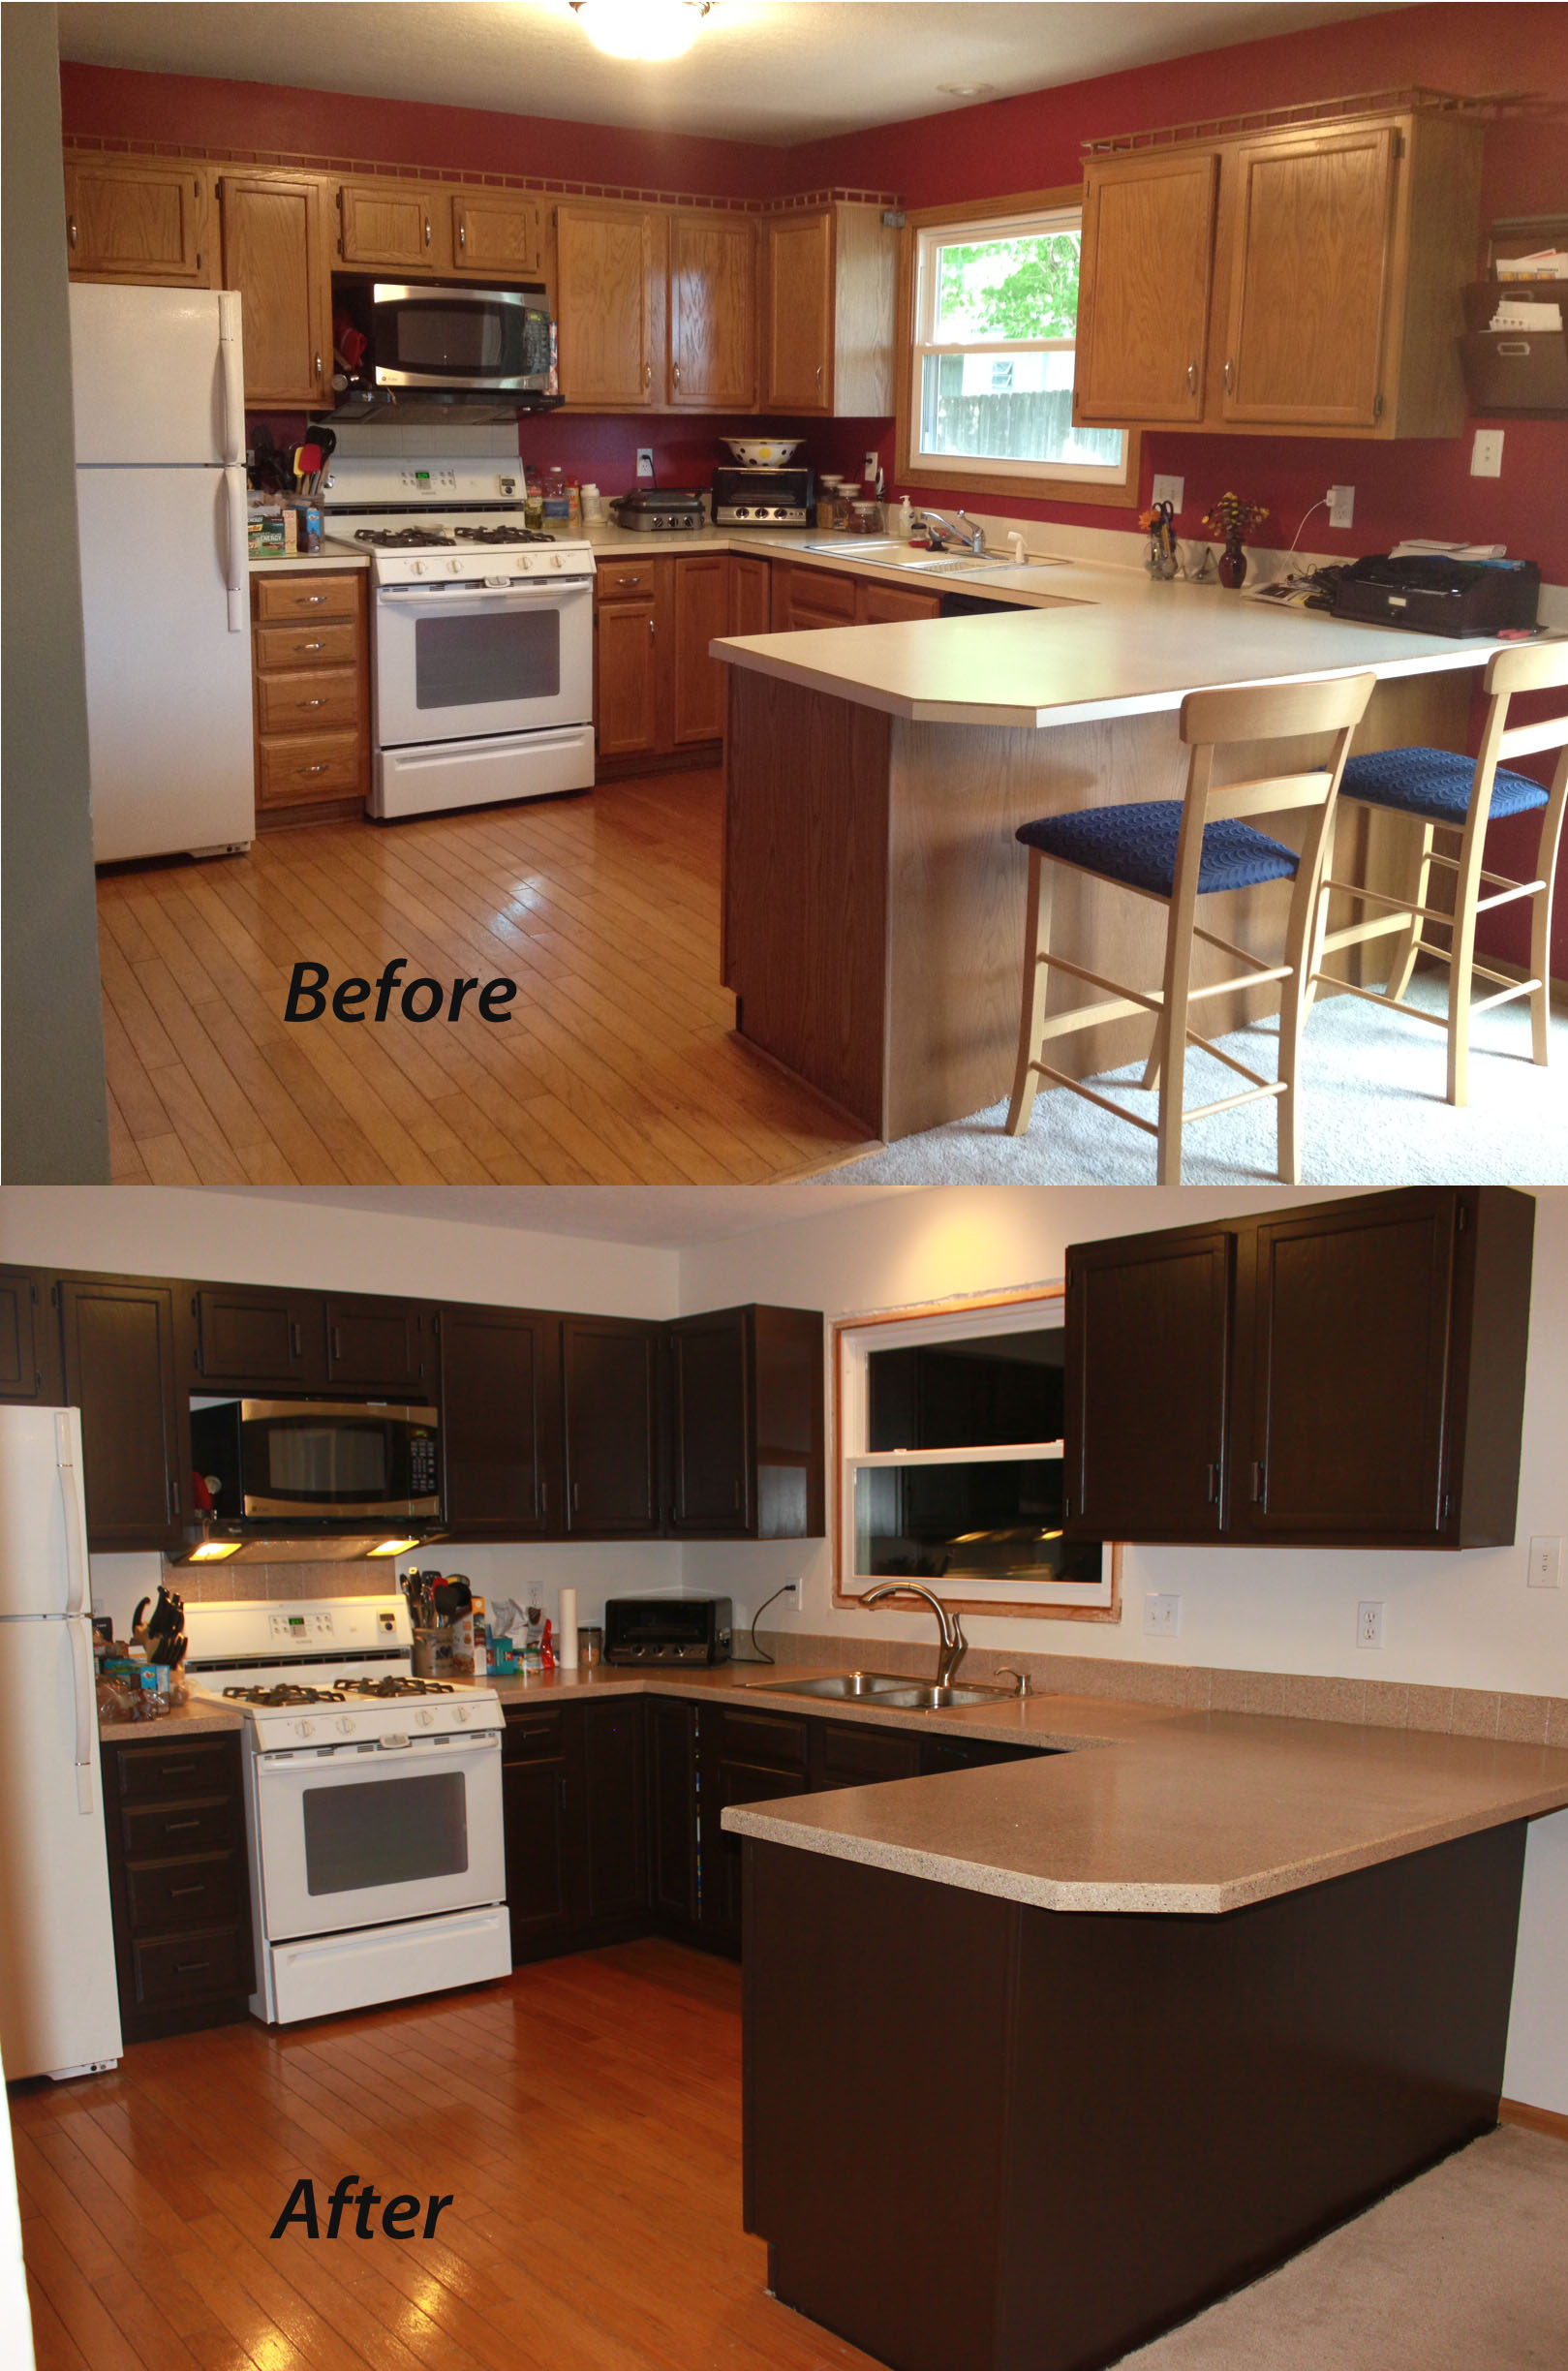 Painting kitchen cabinets before and after car interior design - How to glaze kitchen cabinets that are painted ...